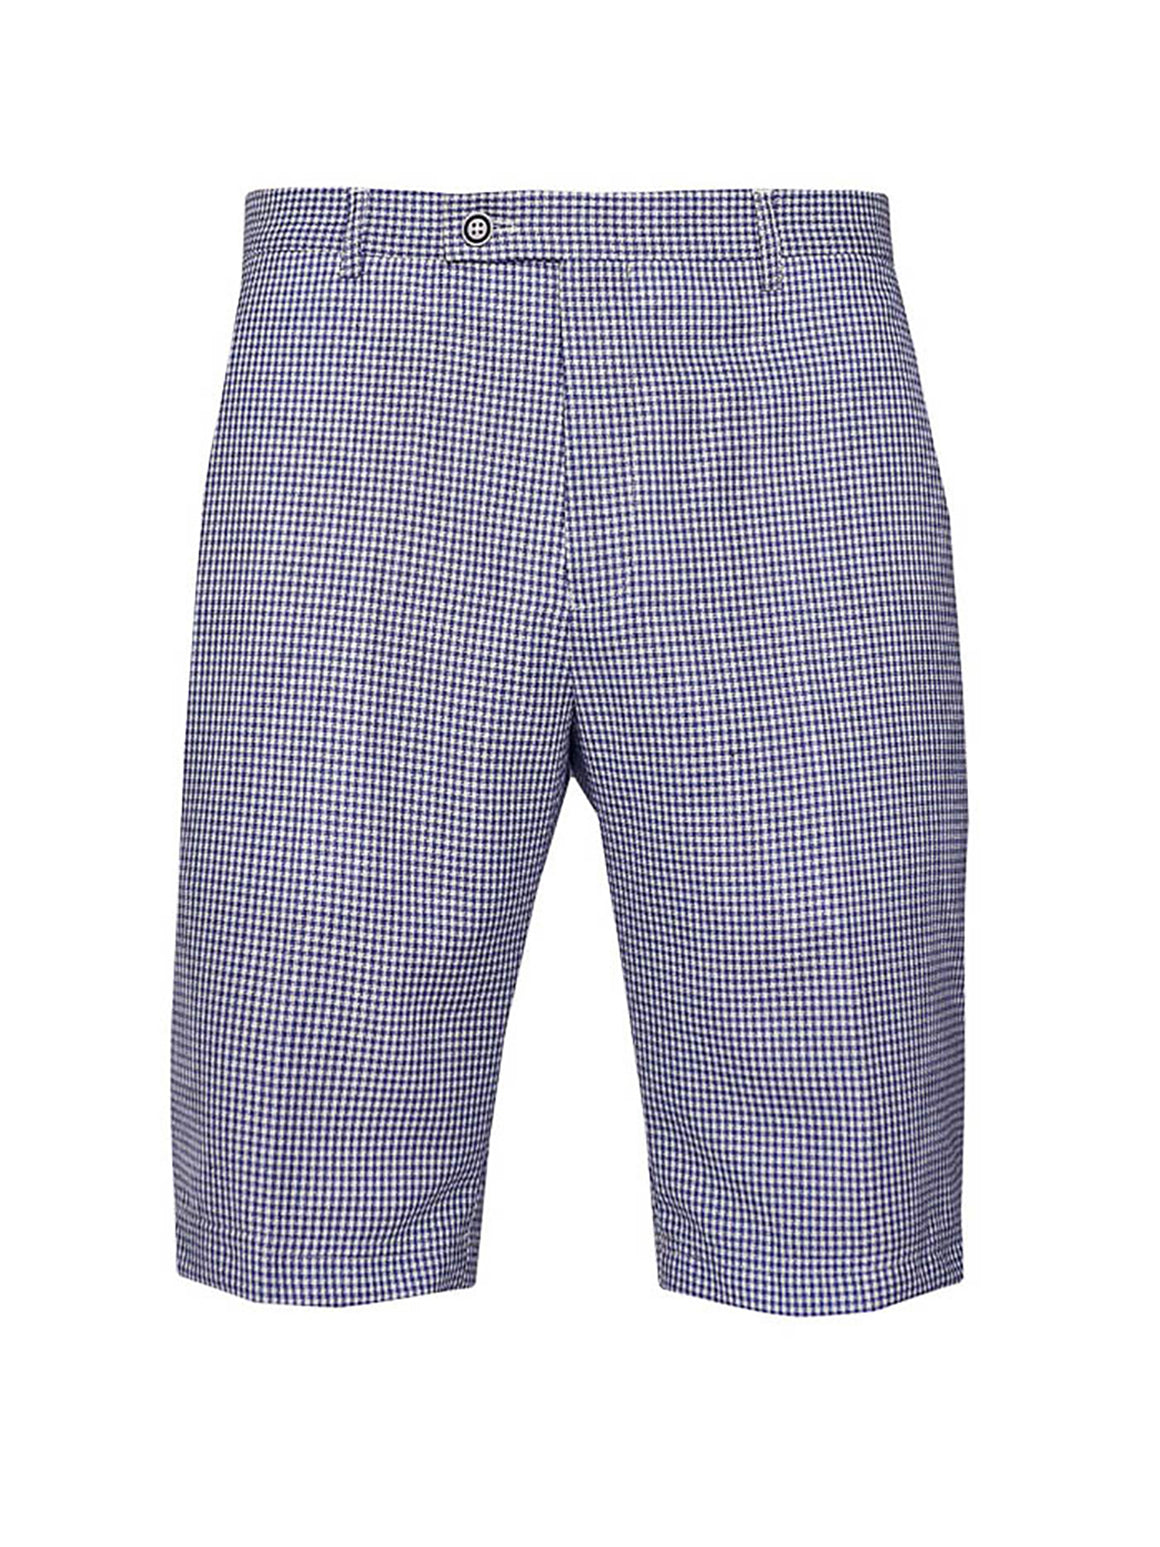 Fairview Shorts  - Blue White Double Basket Weave